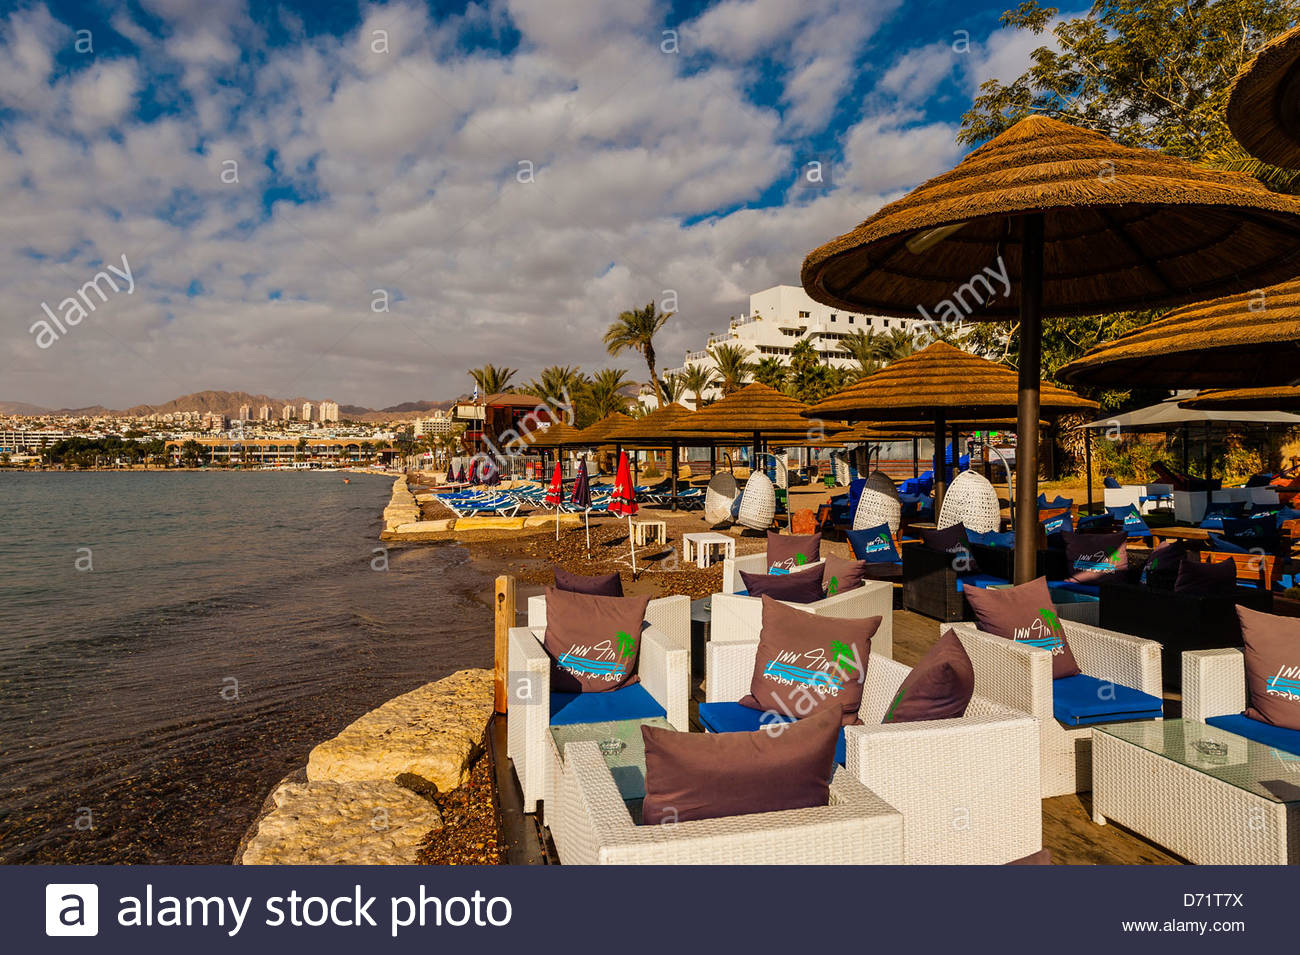 The resort city of Eilat, Gulf of Aqaba, Red Sea, Israel. - Stock Image